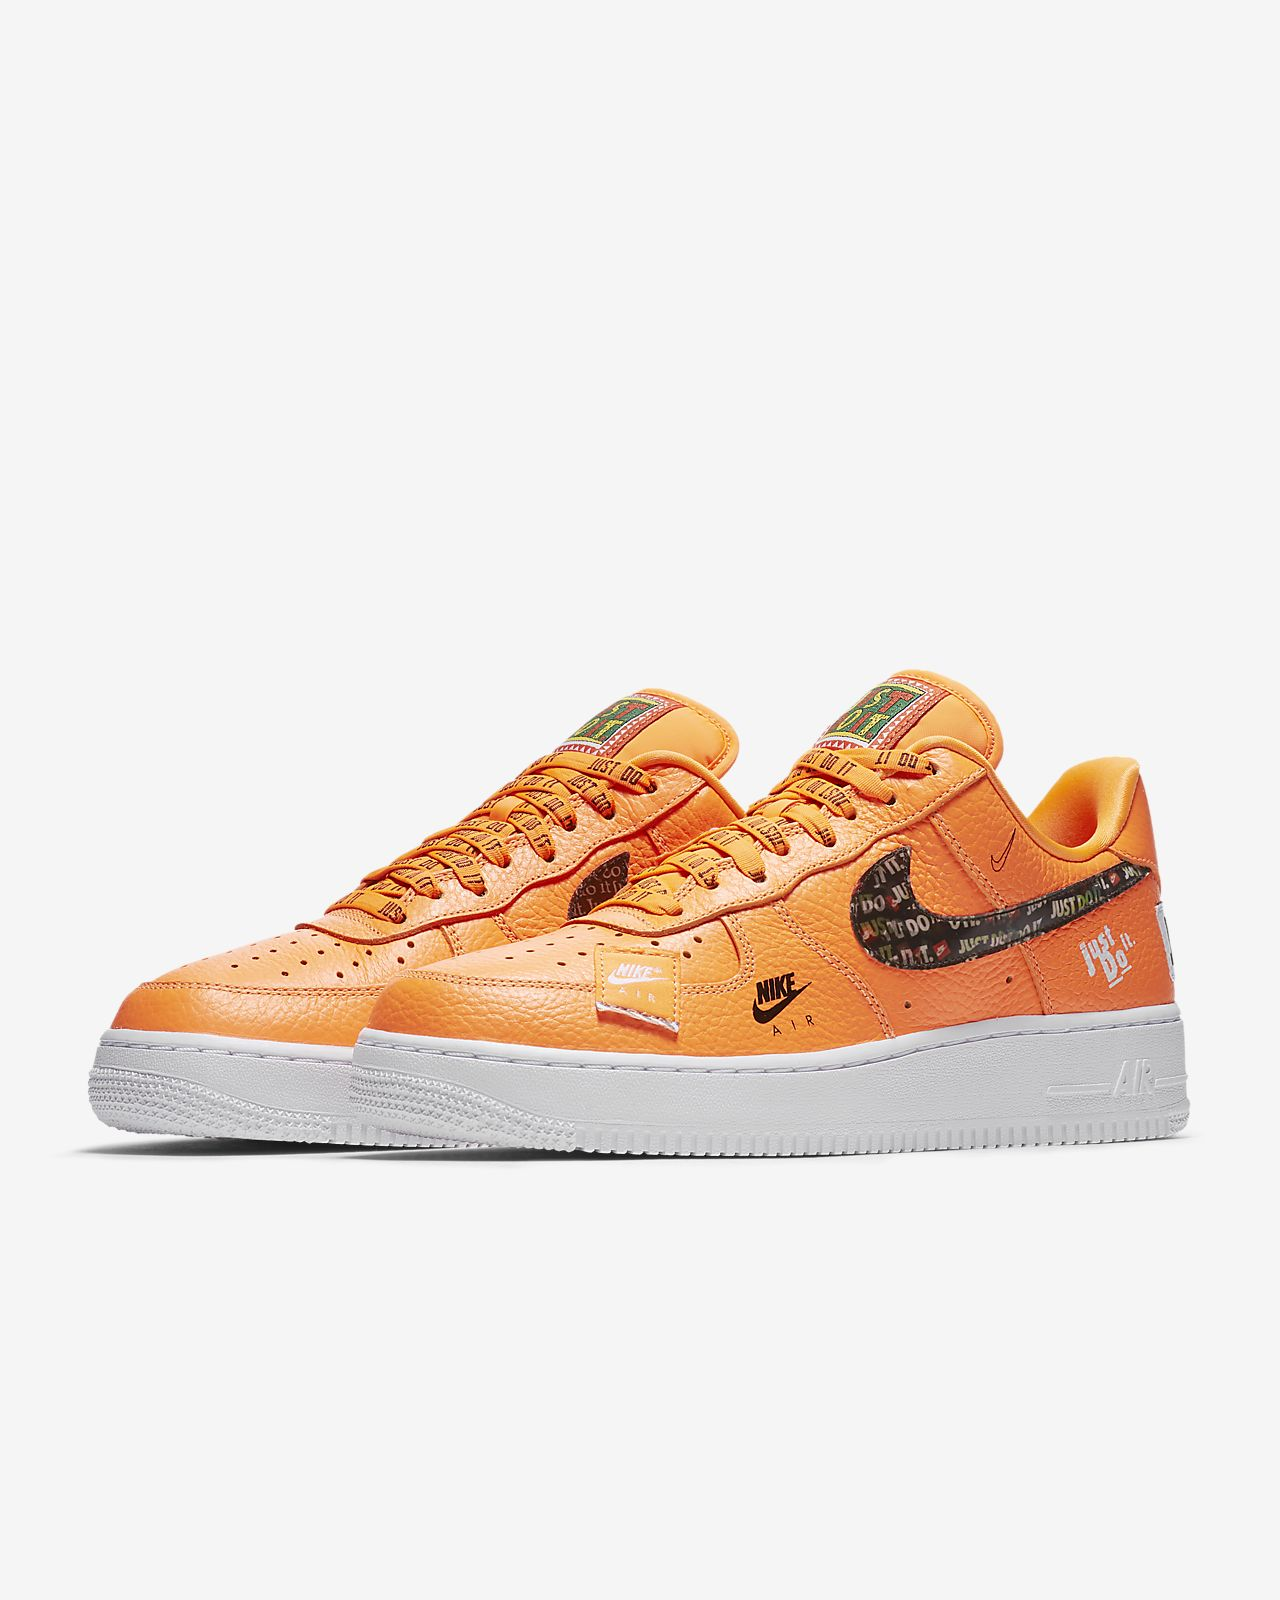 Nike Air Force 1 '07 Premium JDI Men's Shoe